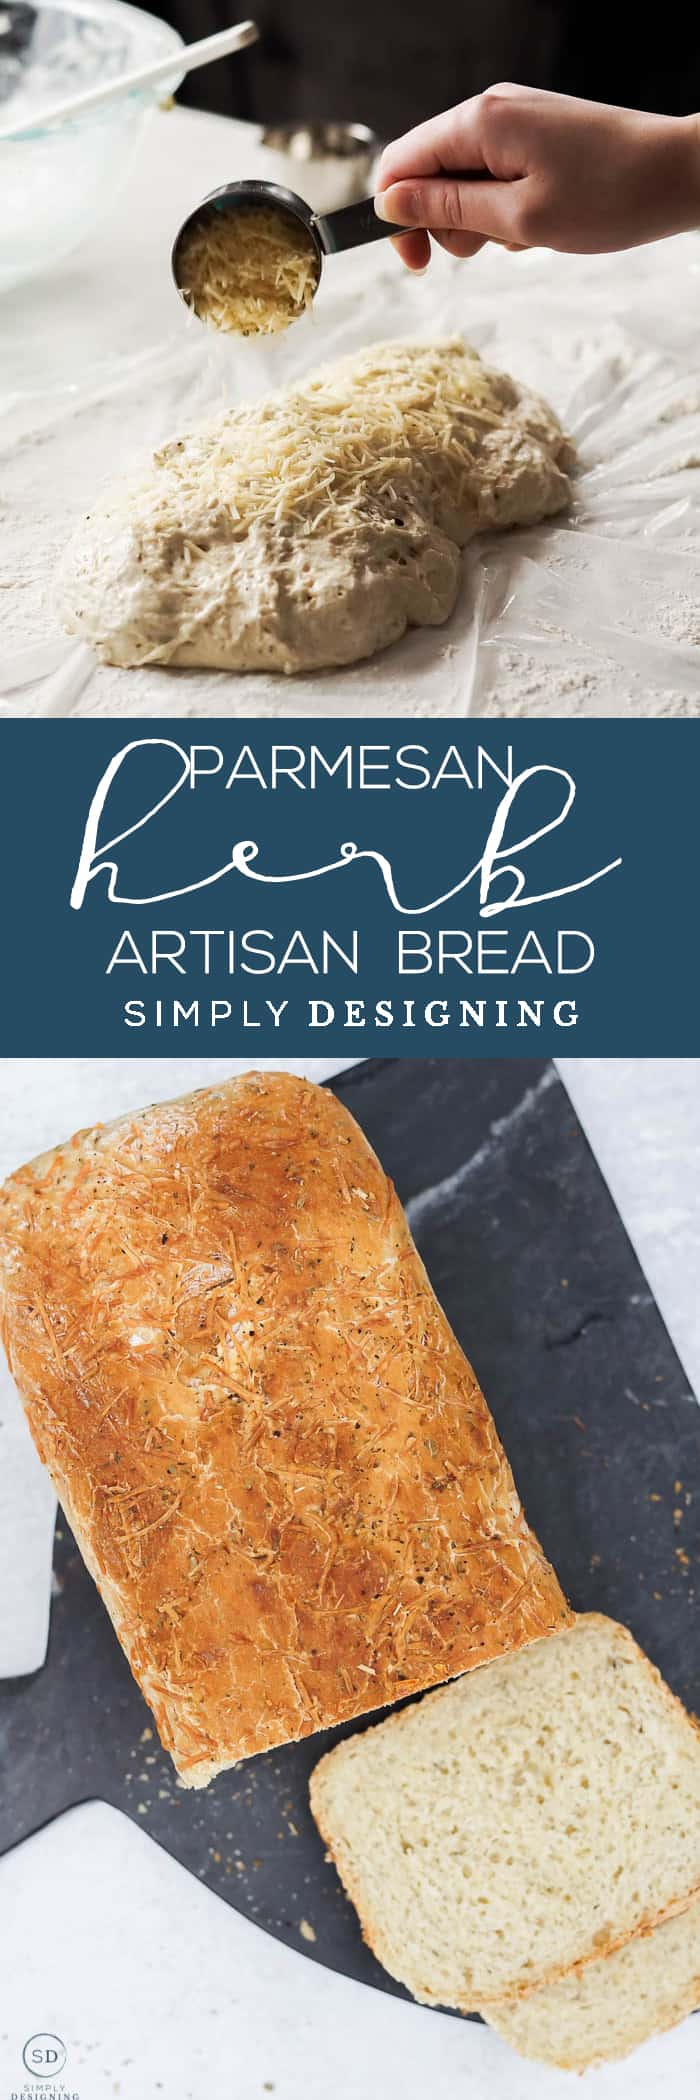 This easy Parmesan Herb Artisan Bread is scrumptious and so easy to make - It only takes 5 minutes of hands-on time and tastes just like restaurant bread